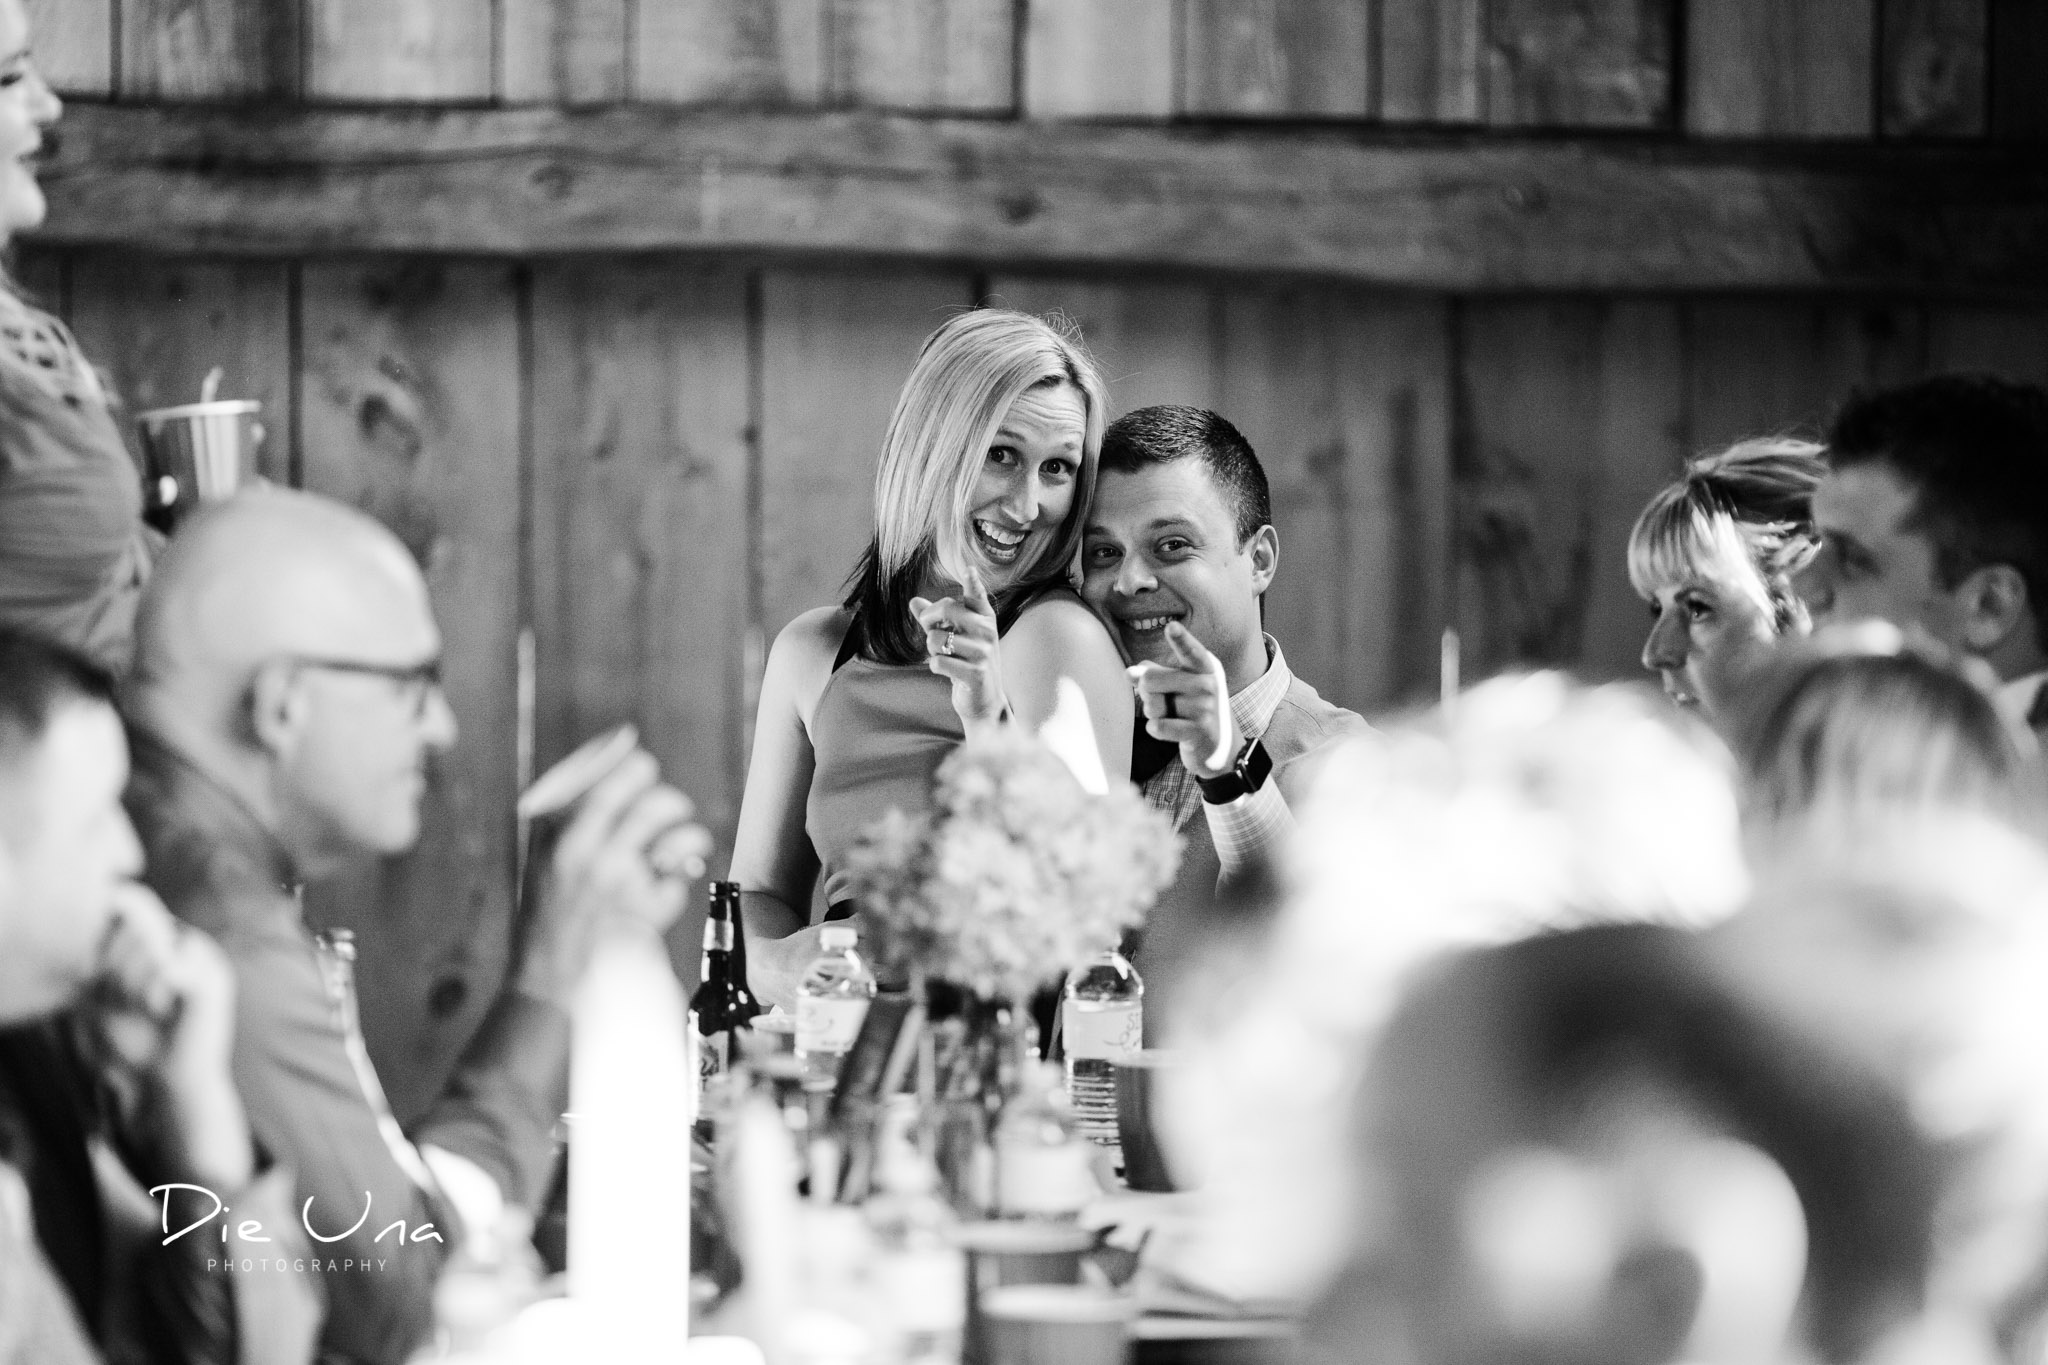 wedding guests being silly during wedding reception black and white candid photography.jpg